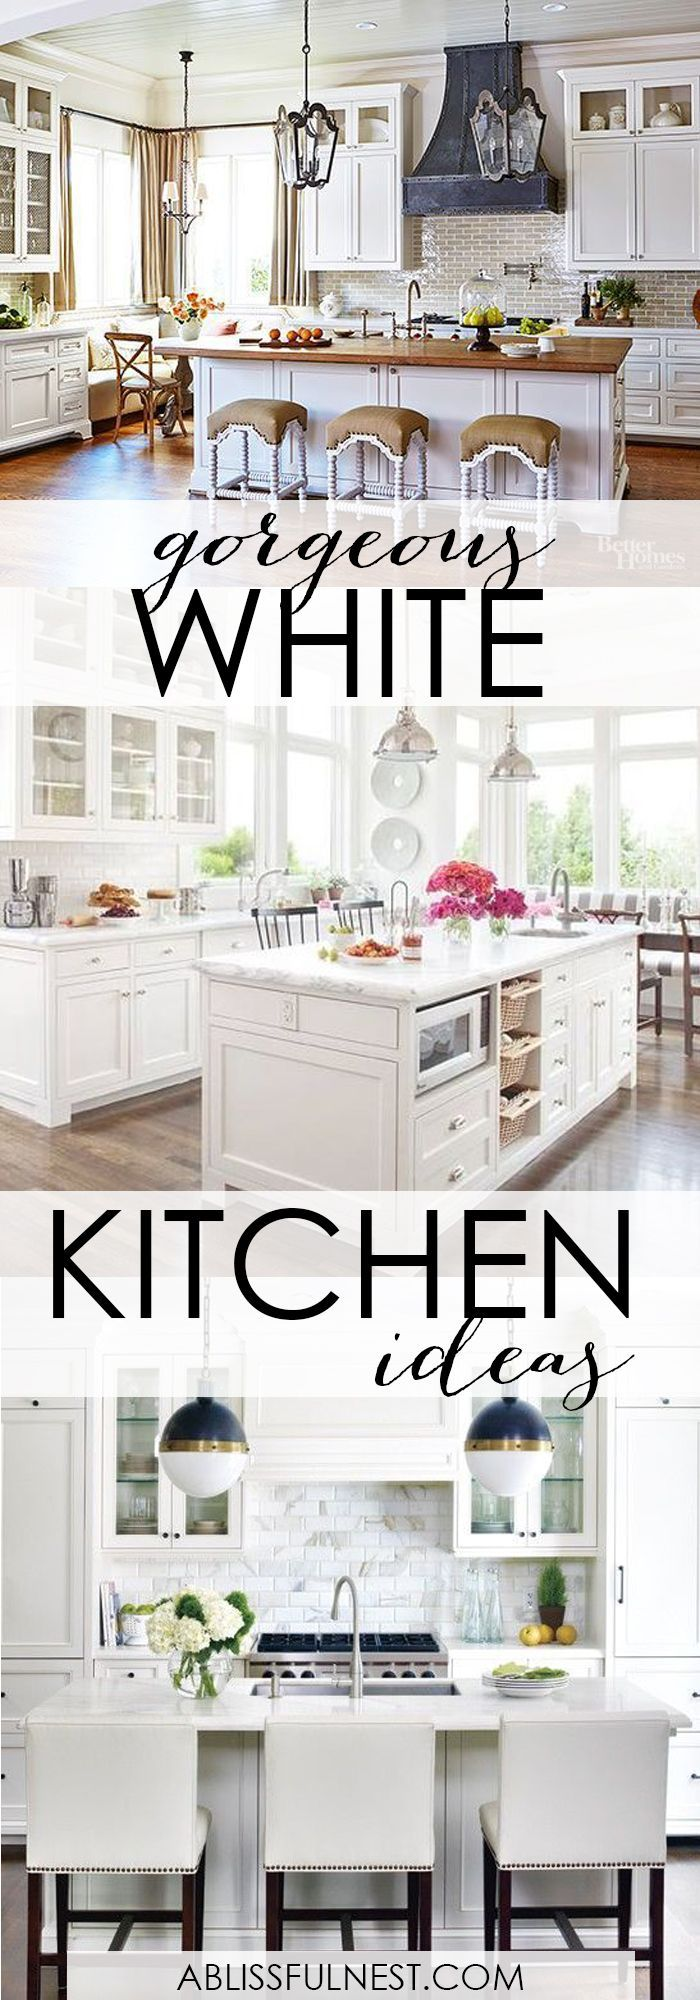 These gorgeous white kitchen ideas range from modern to farmhouse and all in between.